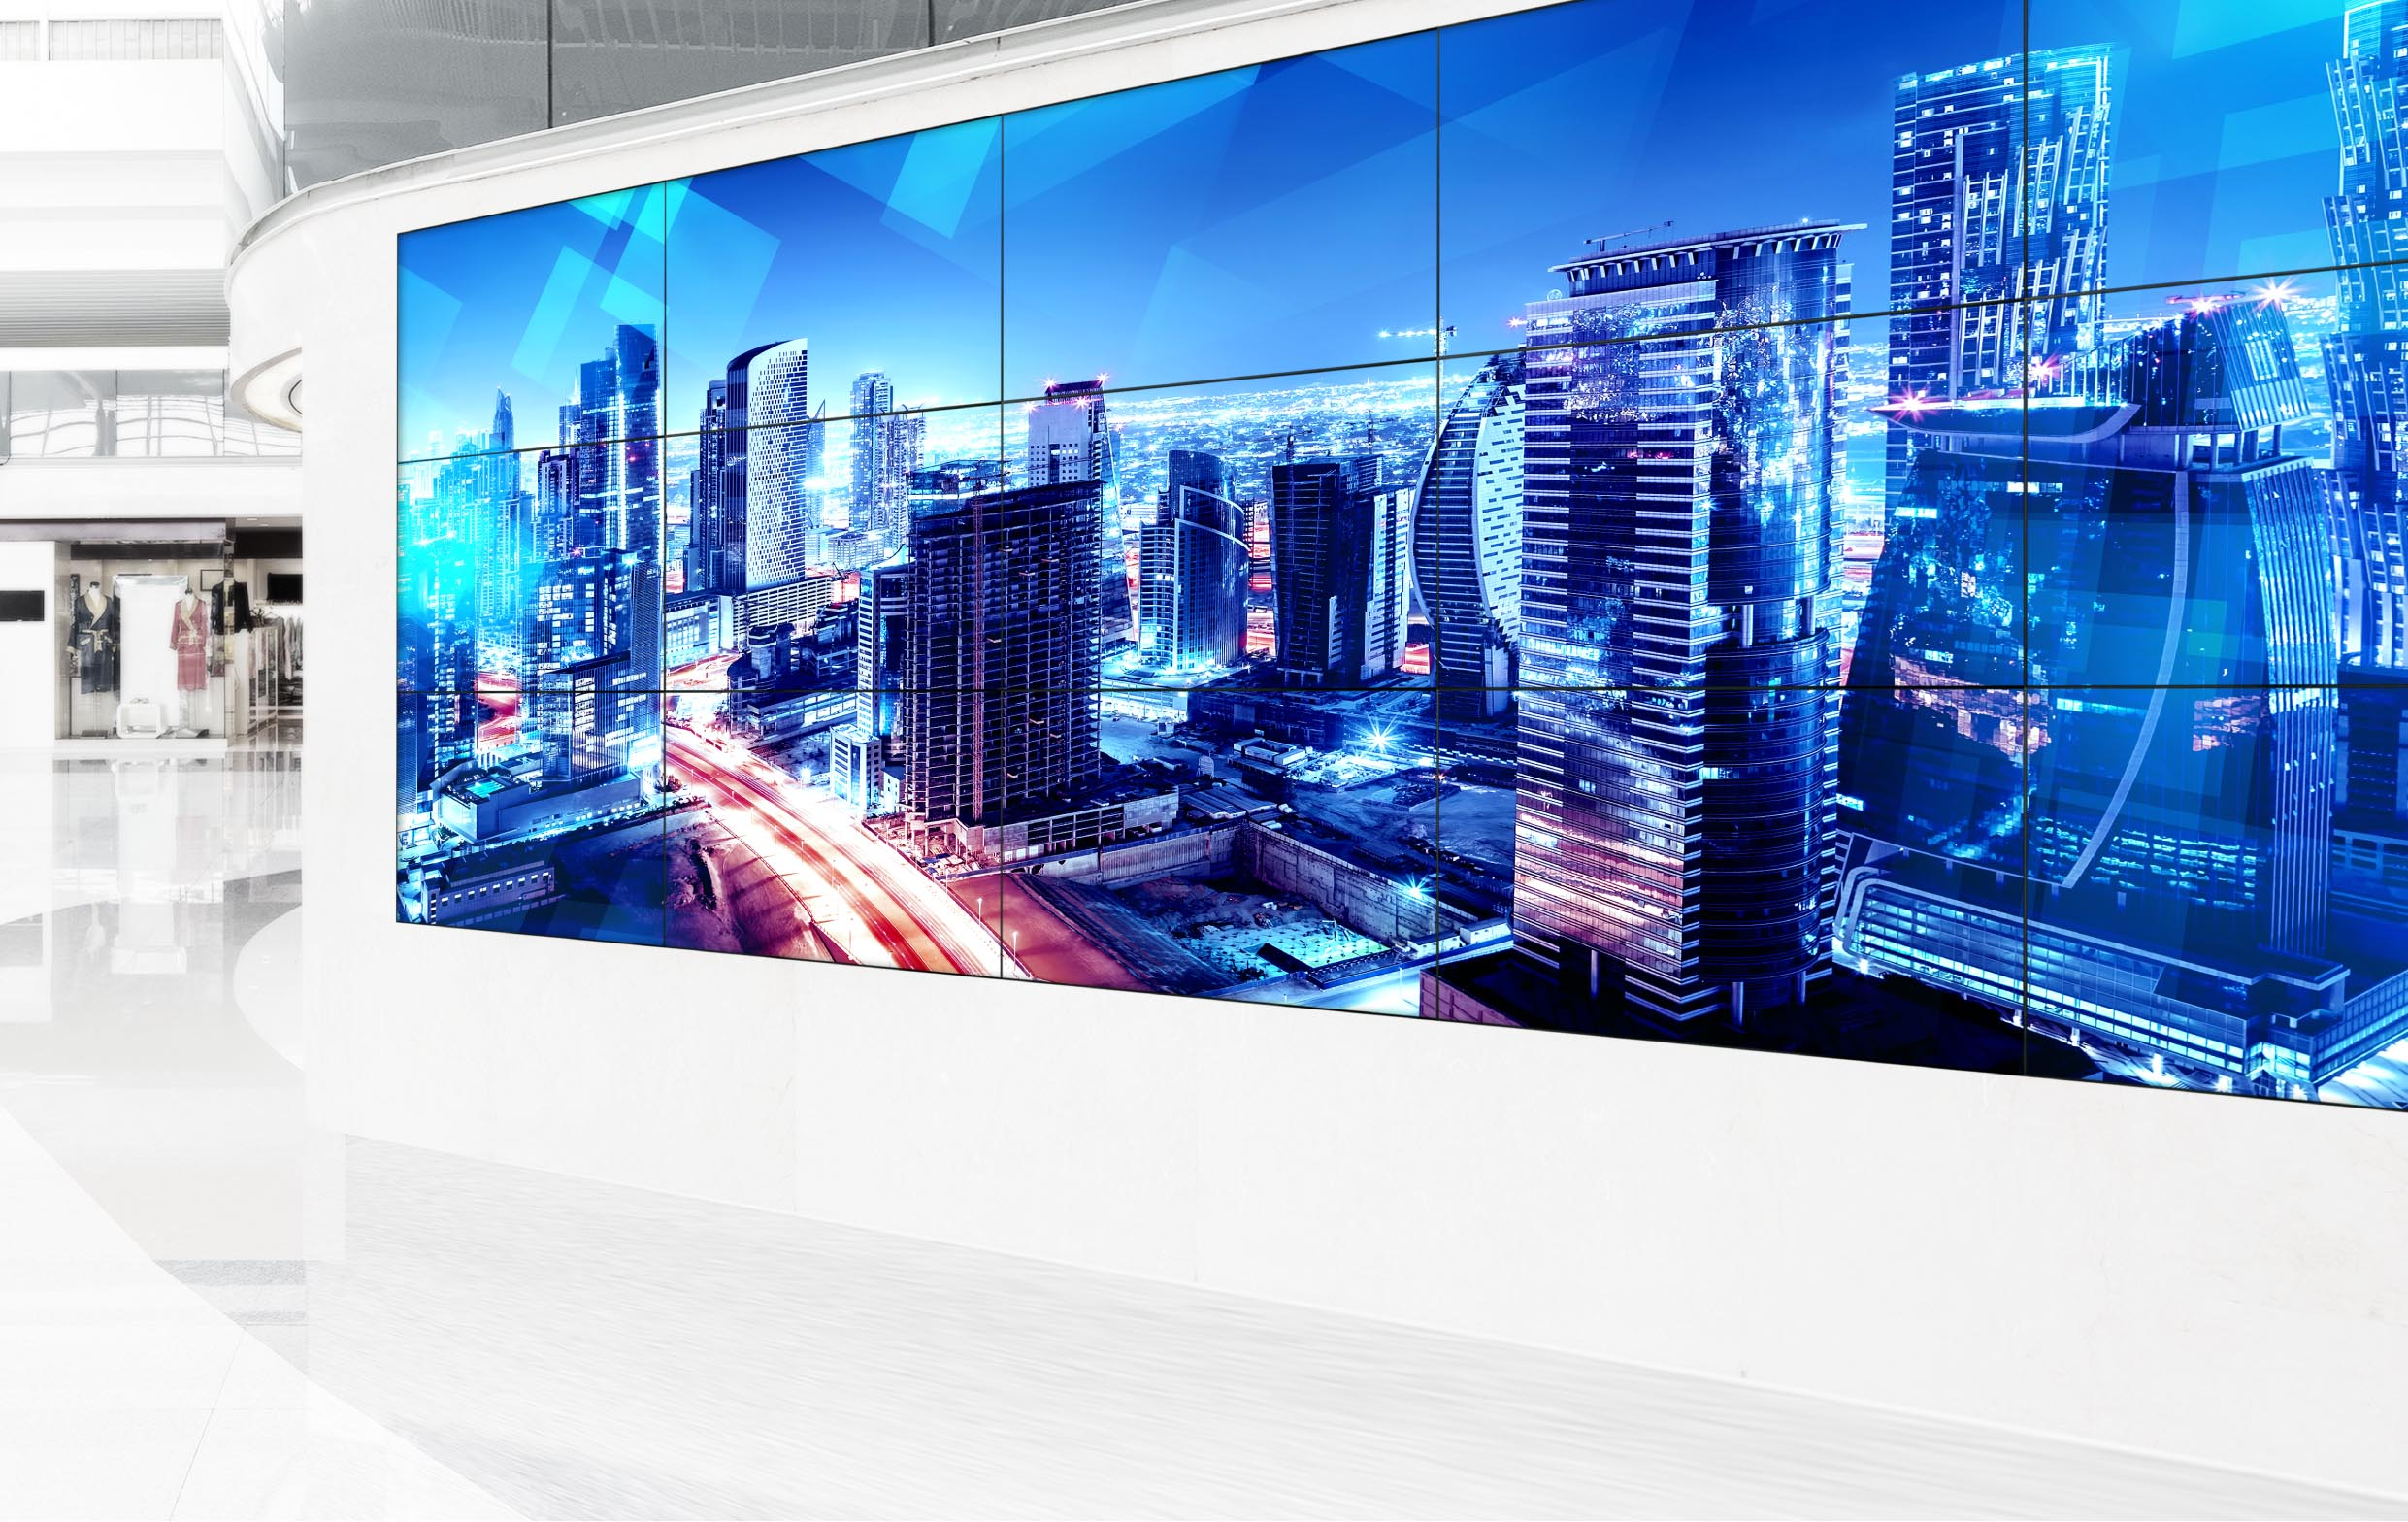 How To Frame A Jersey >> TH-55VF1HU - Video Wall Display | Panasonic